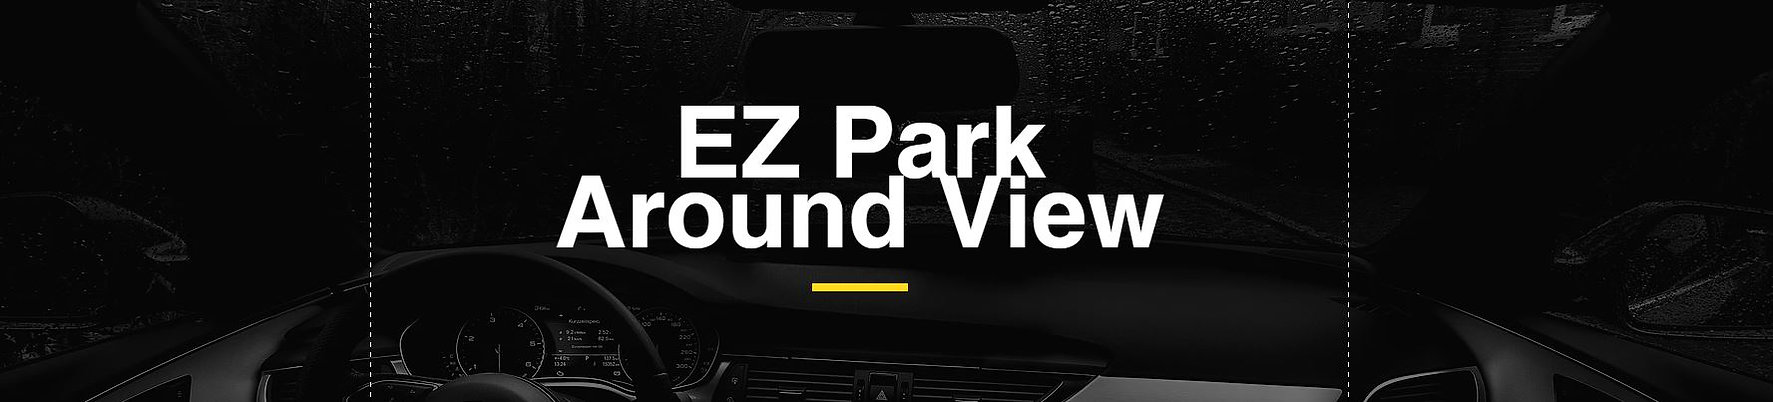 ez park around view.JPG